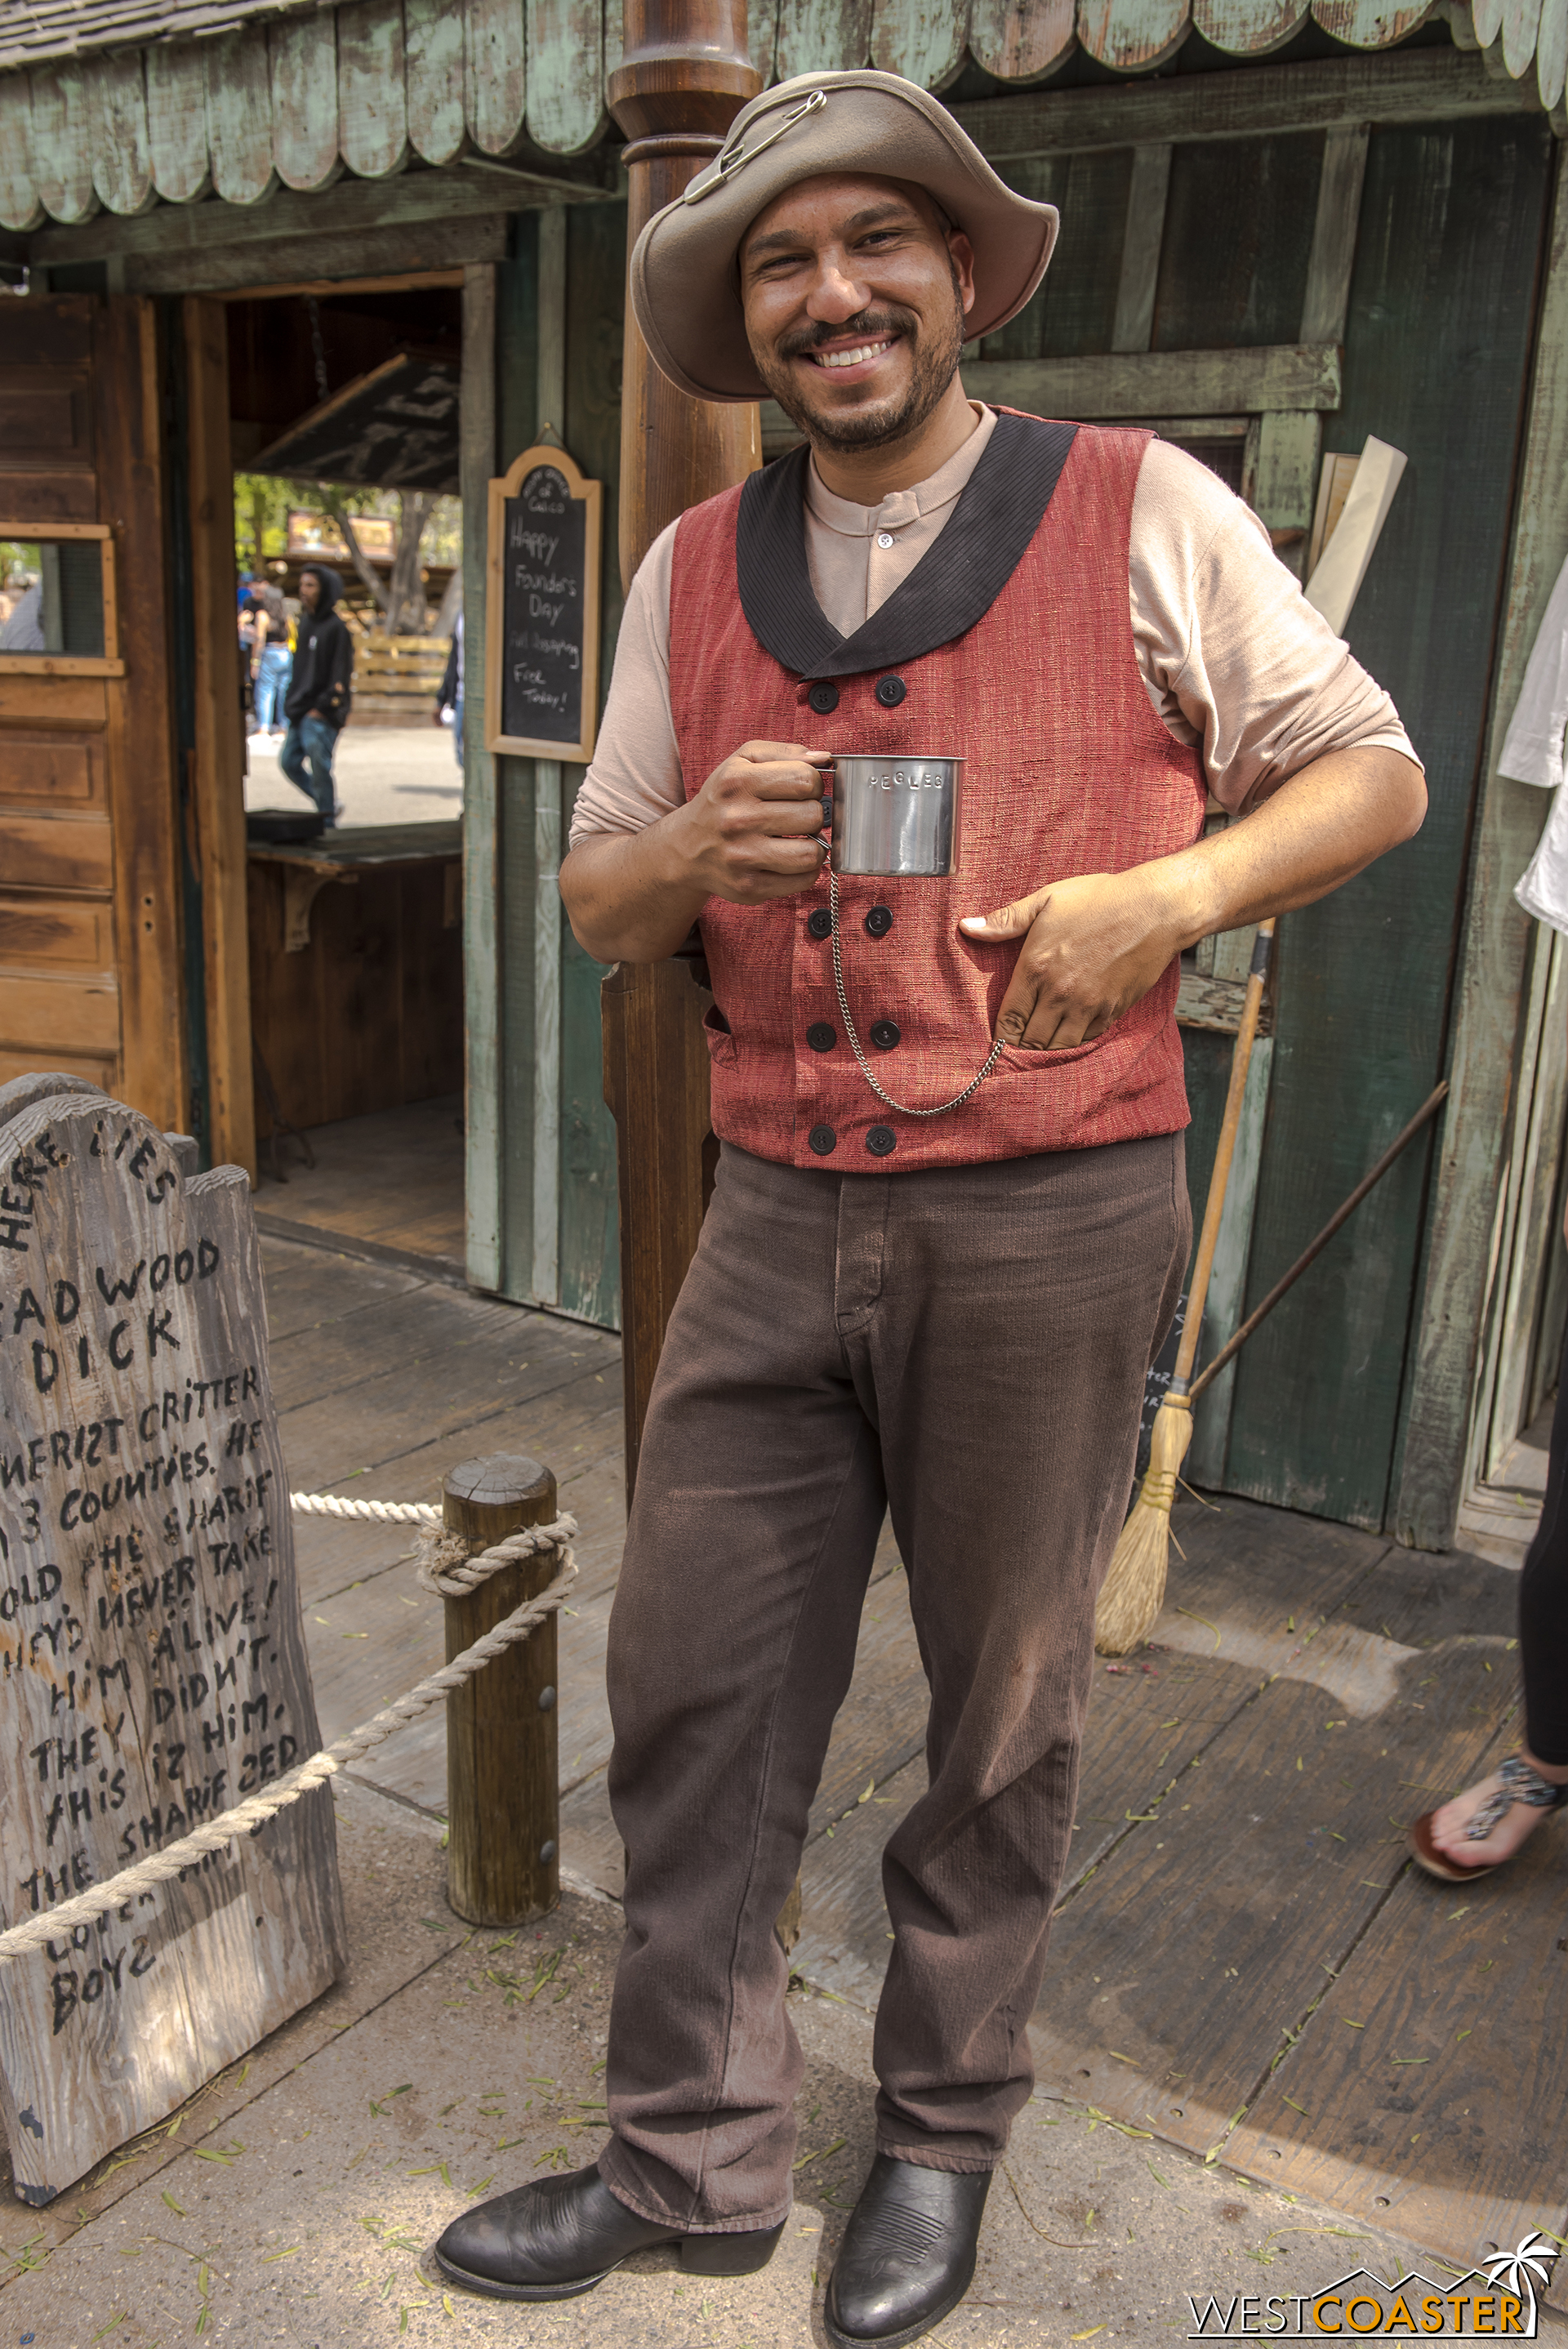 """Joining him most of the time at the Assay Office is """"Peg Leg"""" Cinch, who discovered gold in the Calico Mine at the conclusion of last year's Ghost Town Alive! and owns the largest gold nugget found in these parts.  Apparently, """"Peg Leg"""" is just a nickname and does not reflect the actual status of his limbs!"""